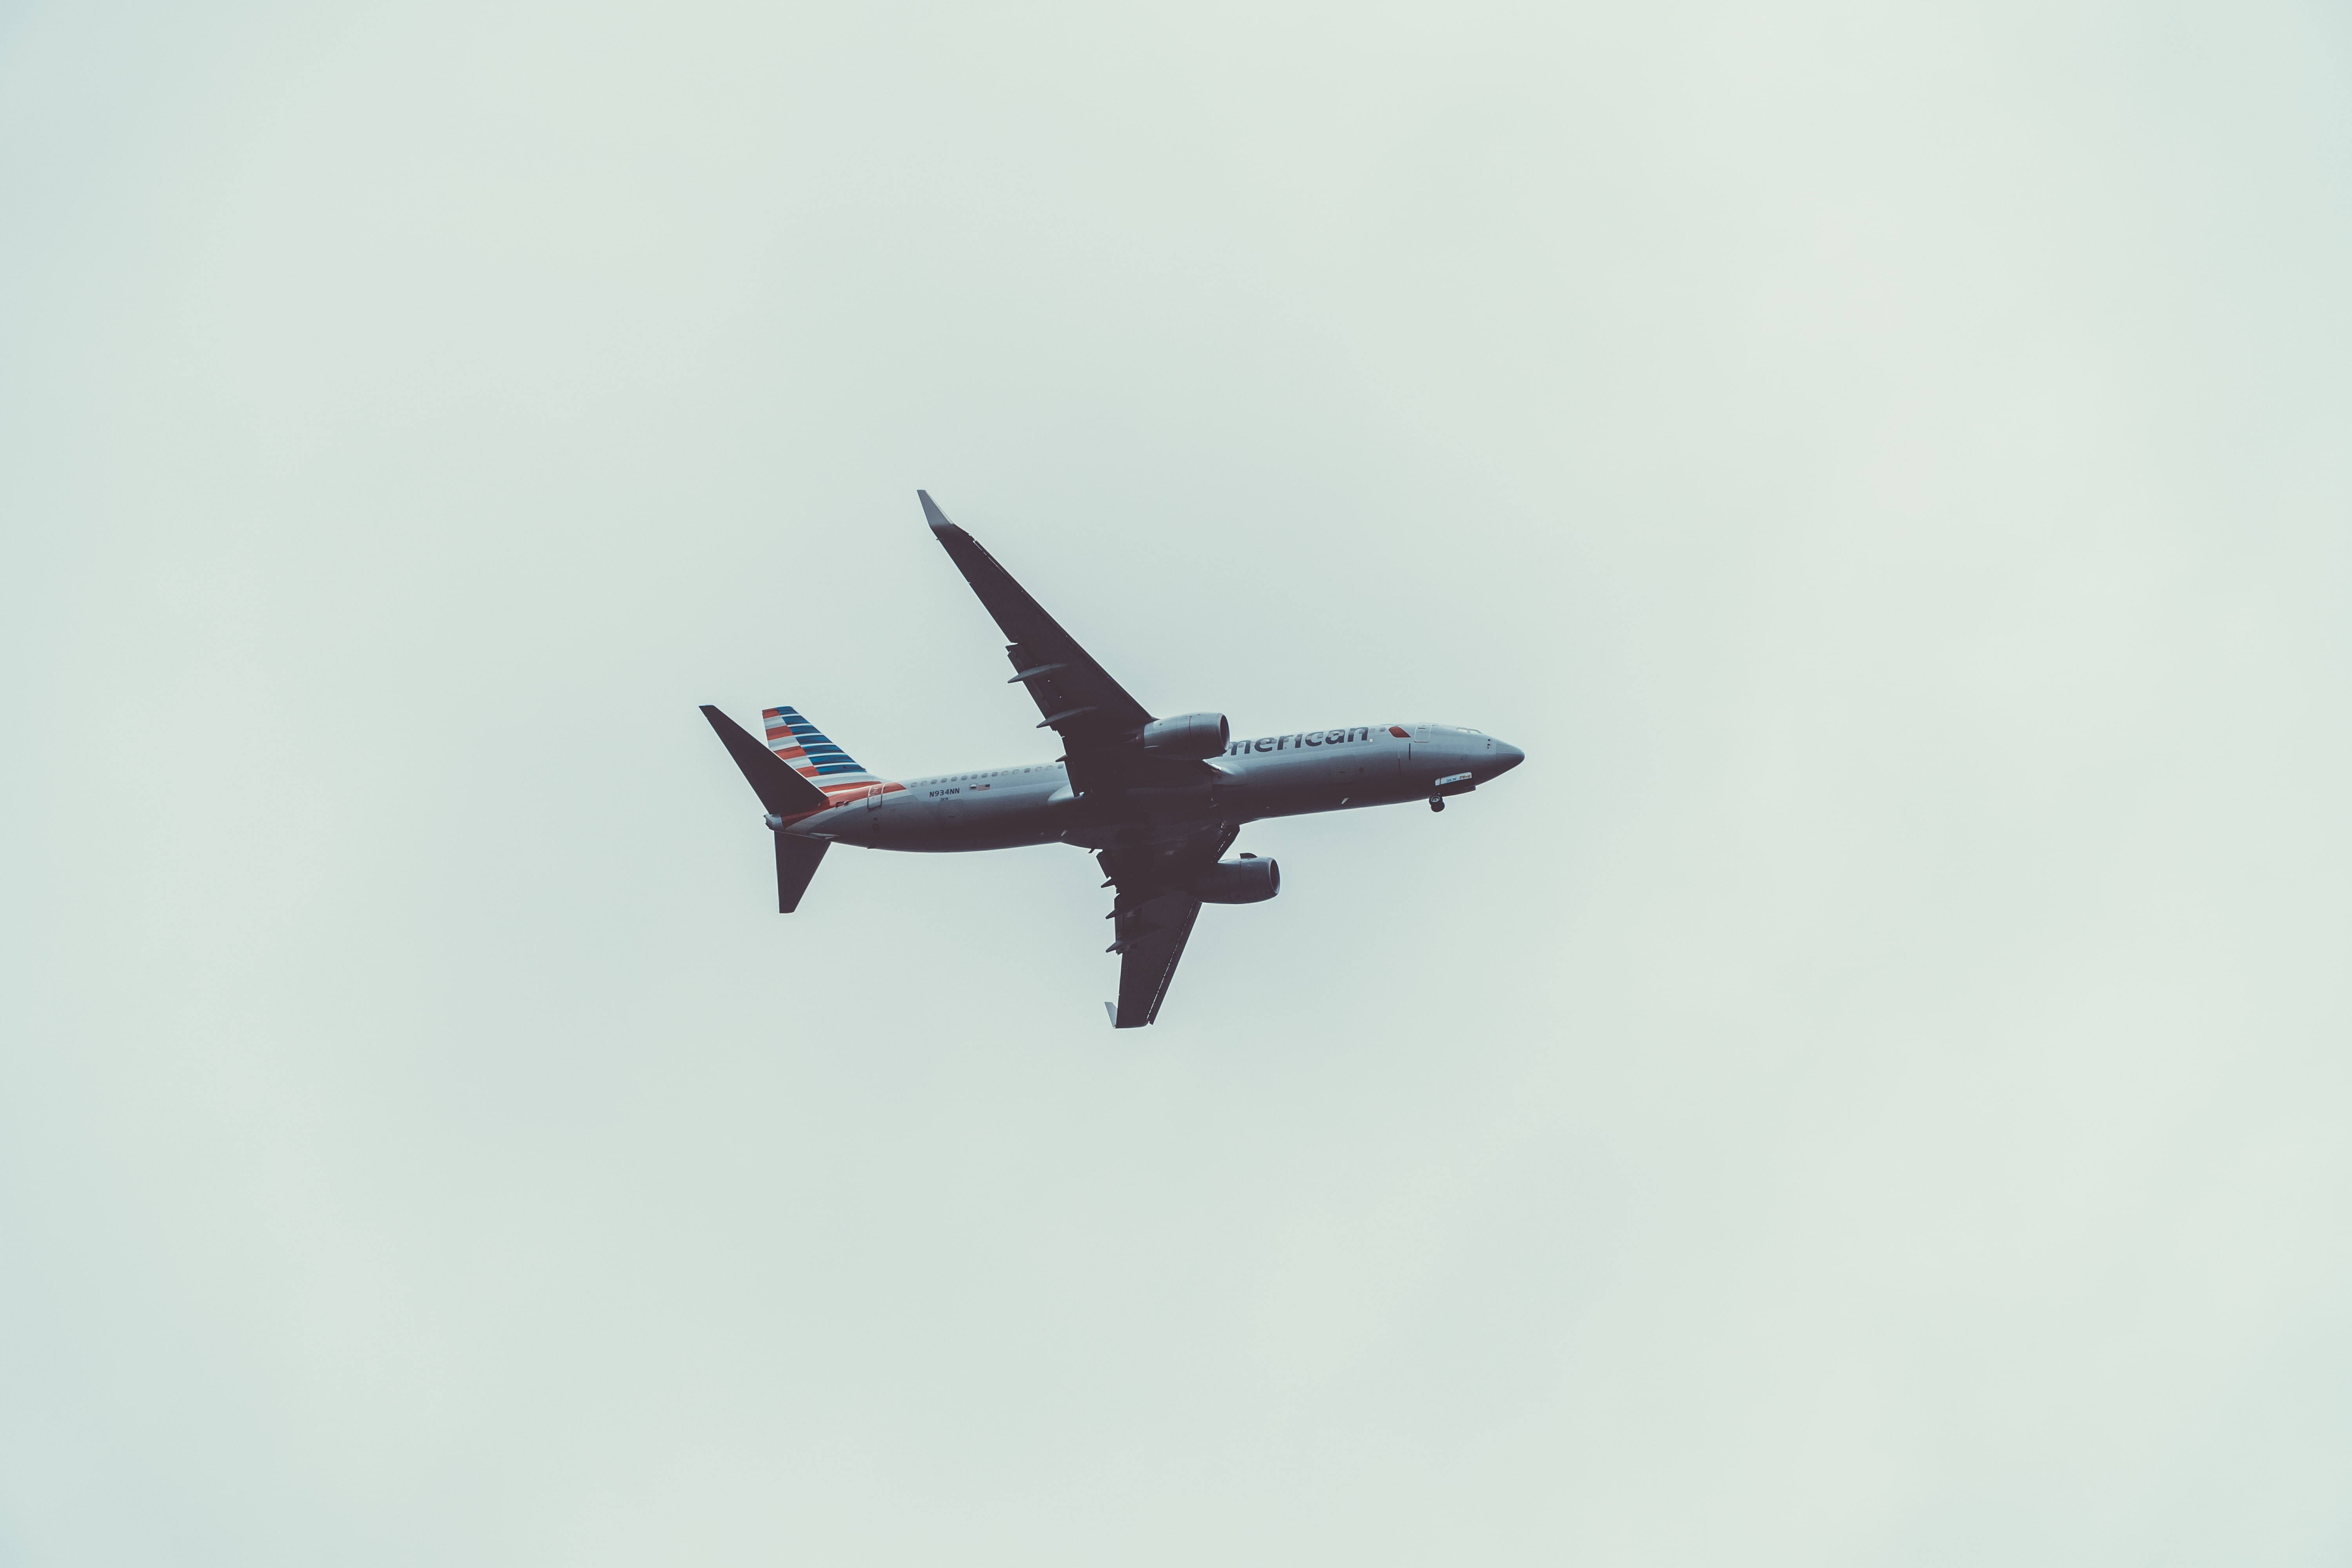 gray commercial airplane flying